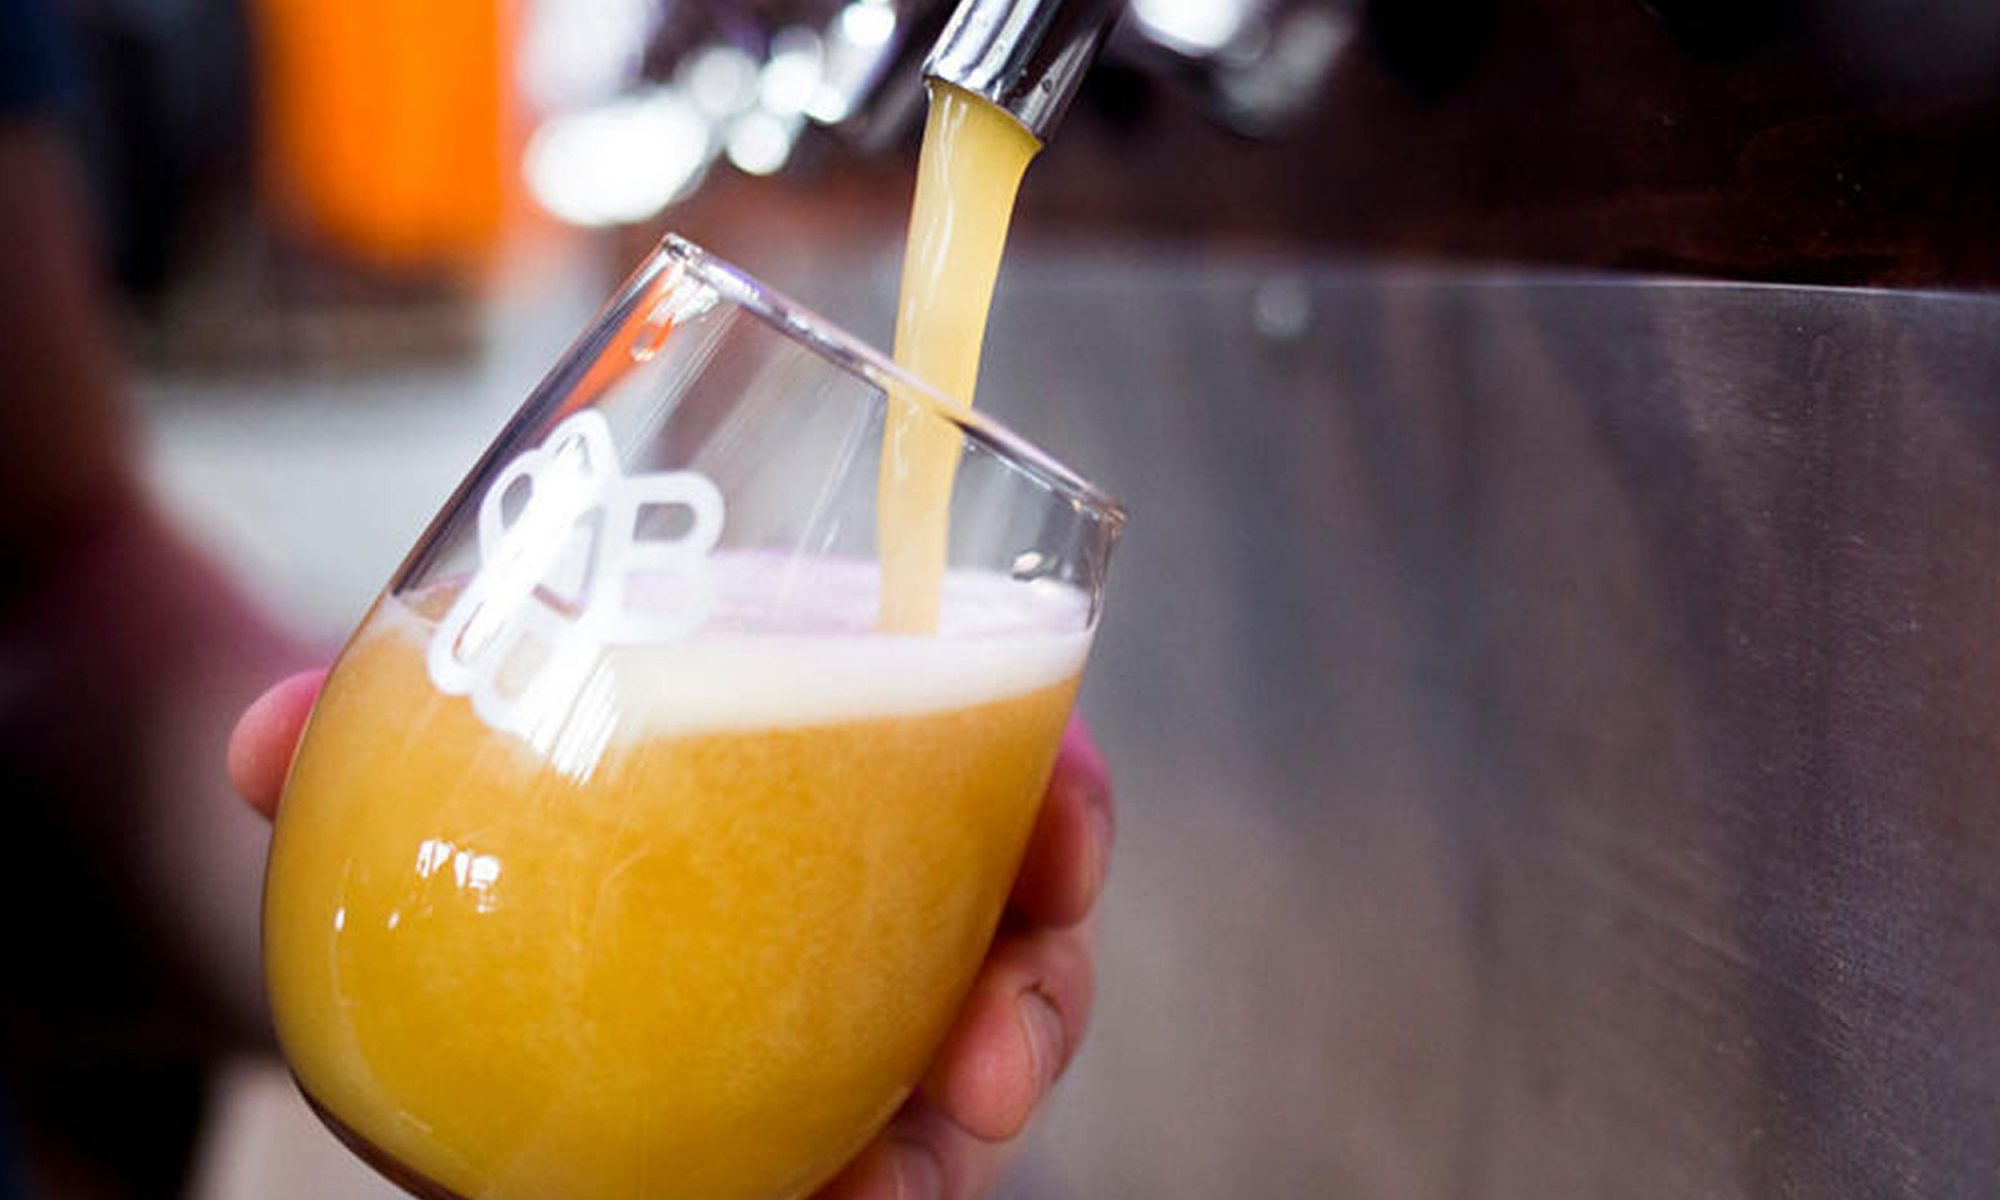 EC: 9 Refreshing Fruit-Flavored Beers to Try This Summer